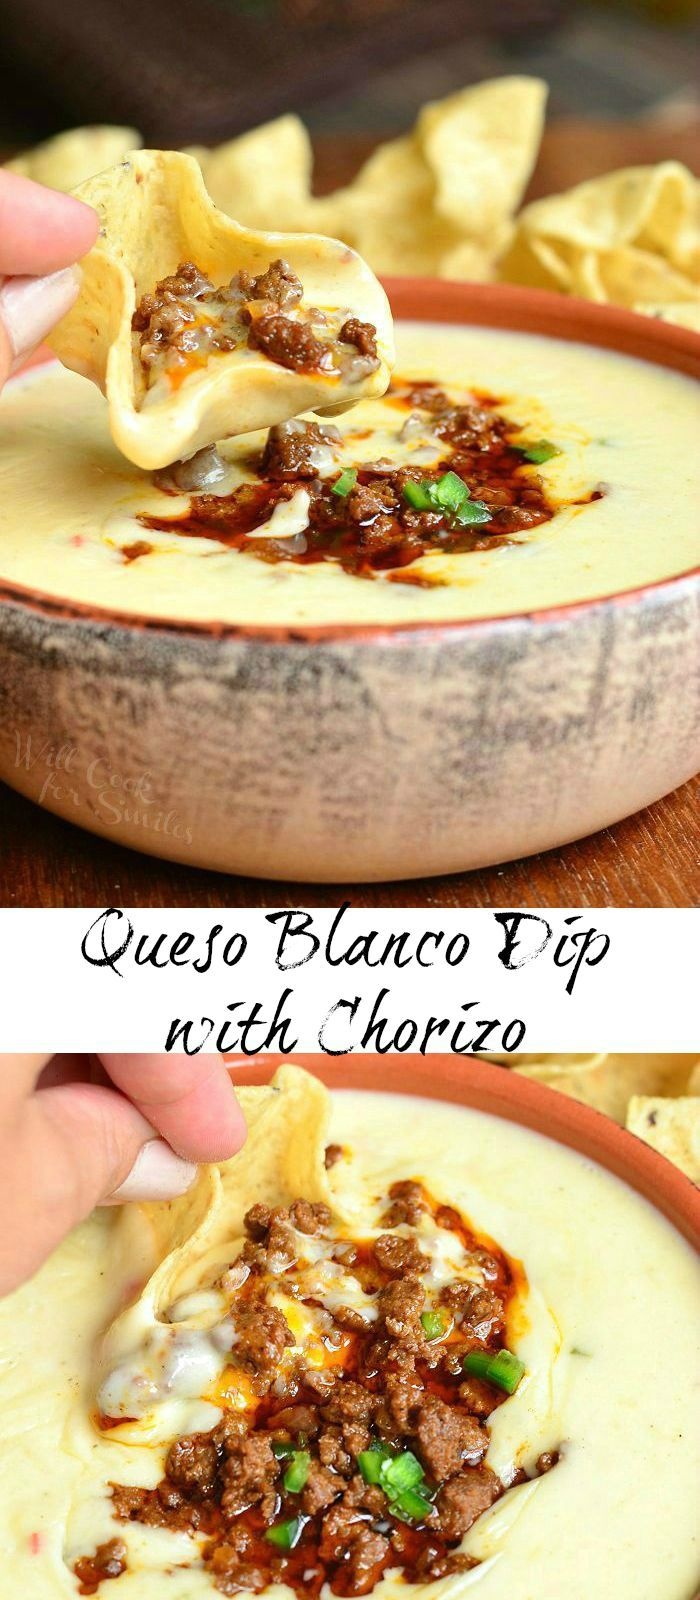 Queso Blanco Dip with Chorizo | from willcookforsmiles.com #cheese #appetizer #fingerfood